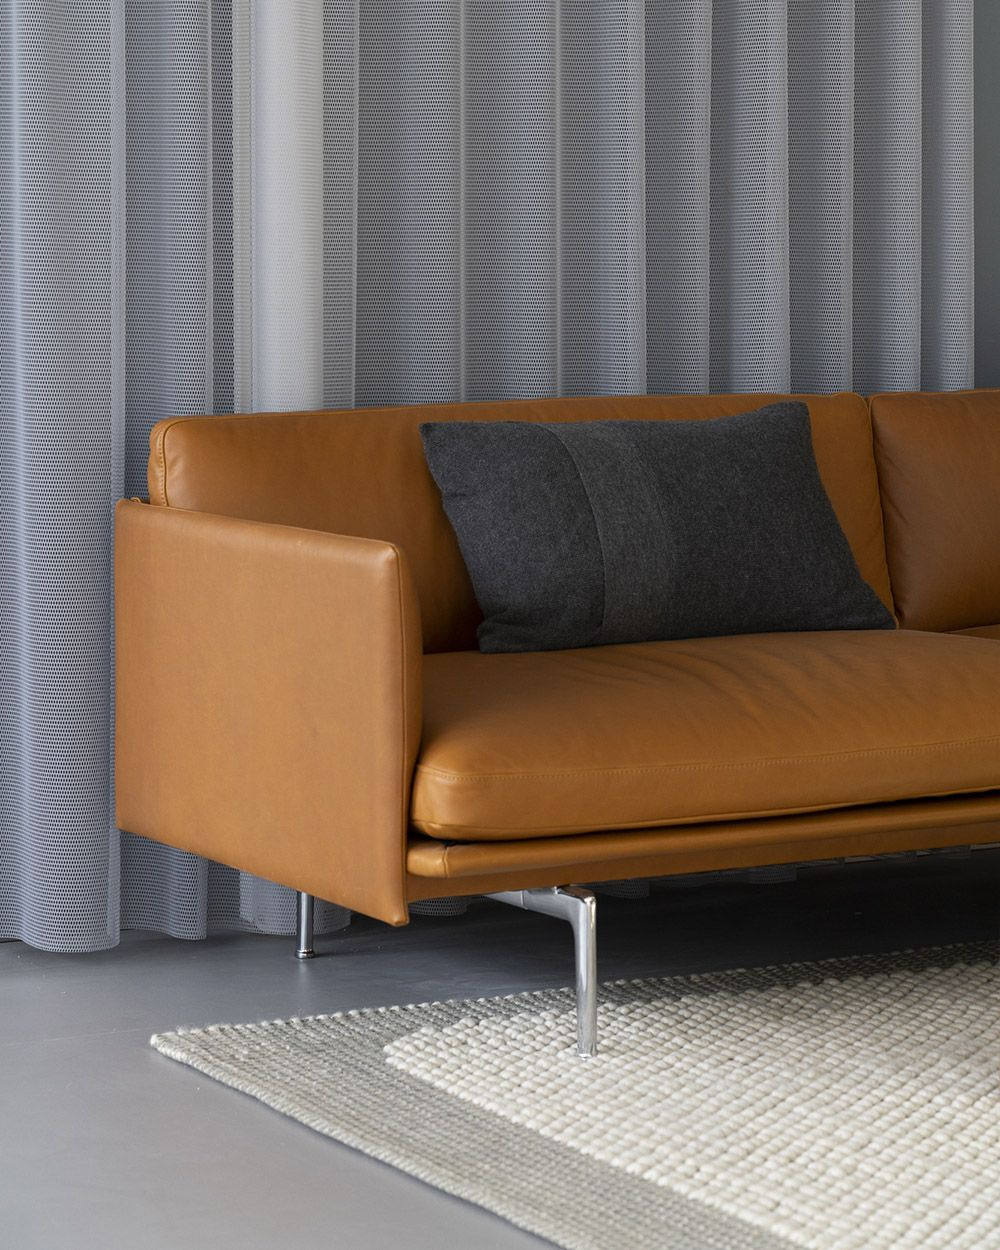 Minimal And Timeless Scandinavian Leather Sofa For Living Room Decor Inspiration From Scandinavian Sofa Design Leather Sofa Decor Living Room Decor Inspiration